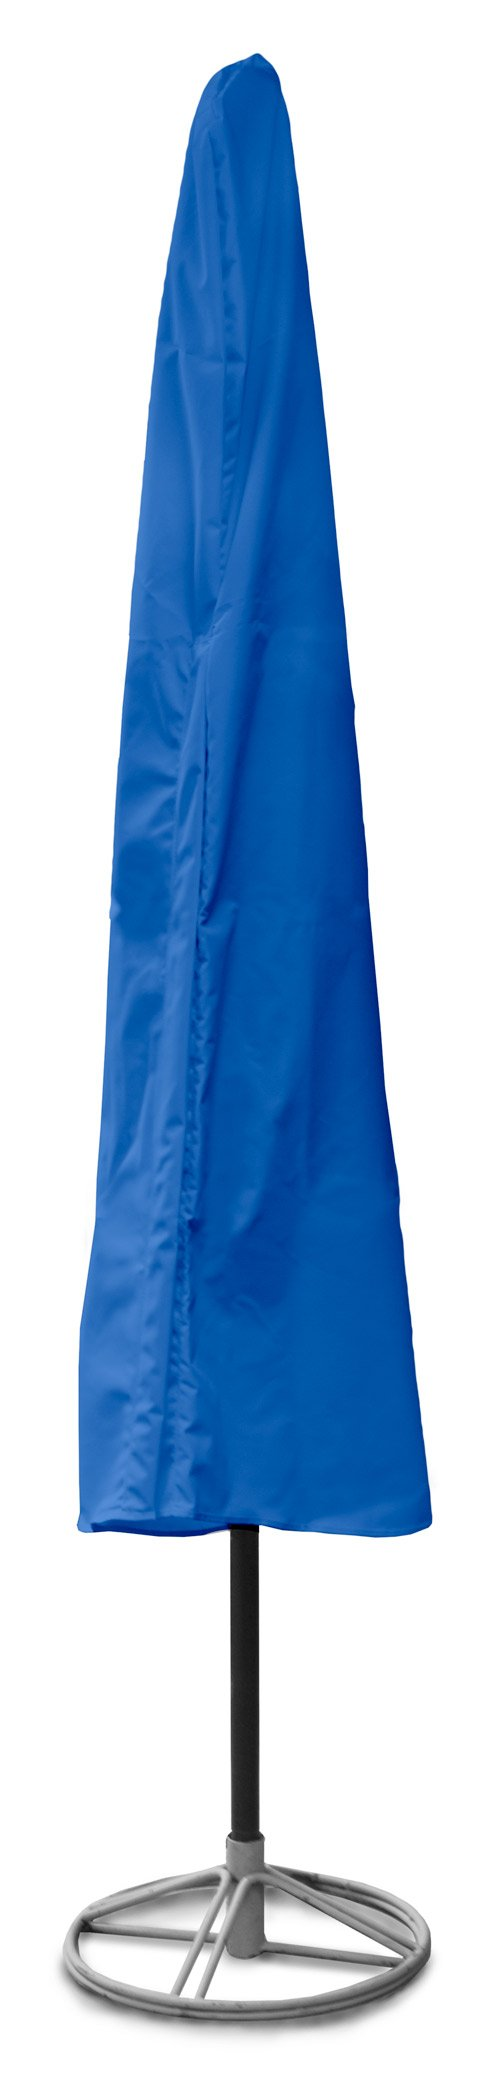 KoverRoos Weathermax 04282 11-Feet Umbrella Cover, 88-Inch Height by 48-Inch Circumference, Pacific Blue